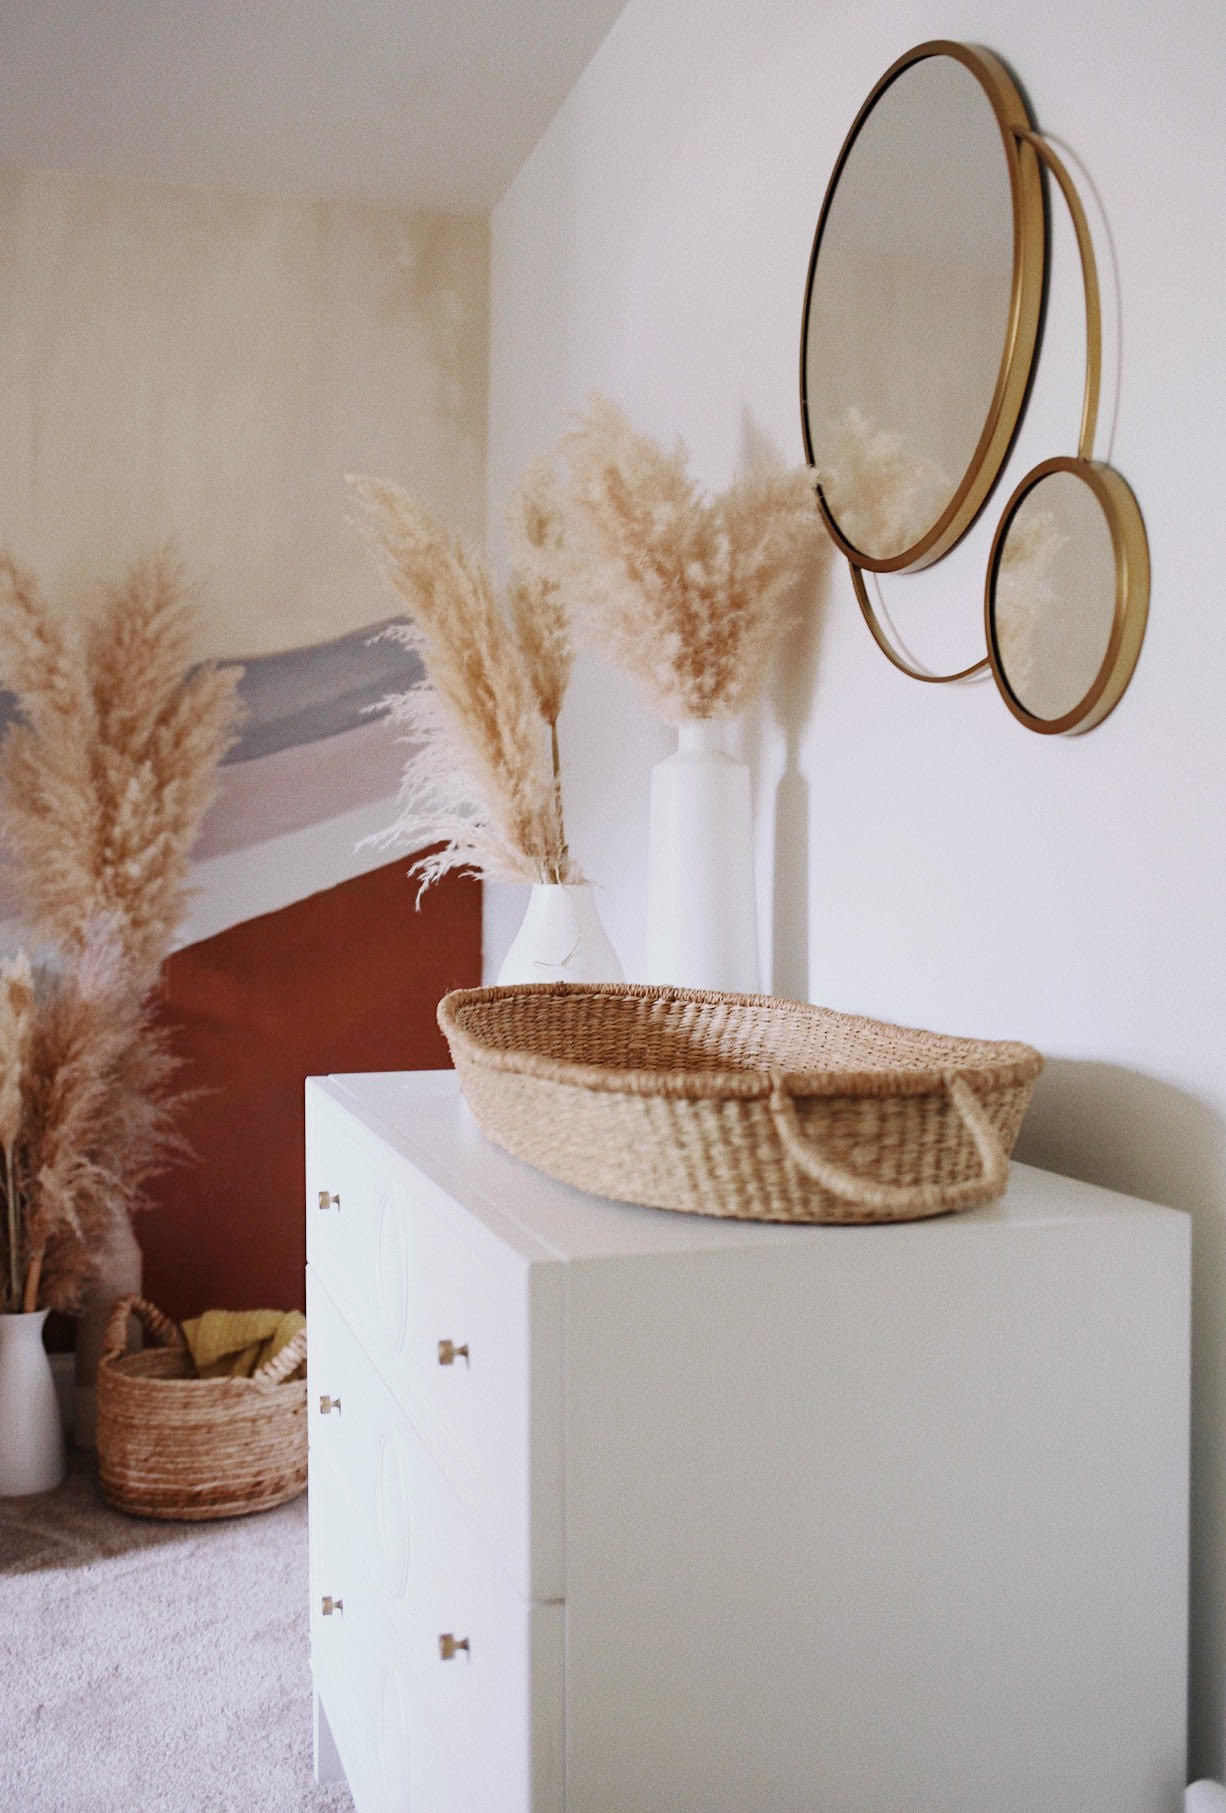 Changing Basket on Dresser with Brass Mirror and Pampas